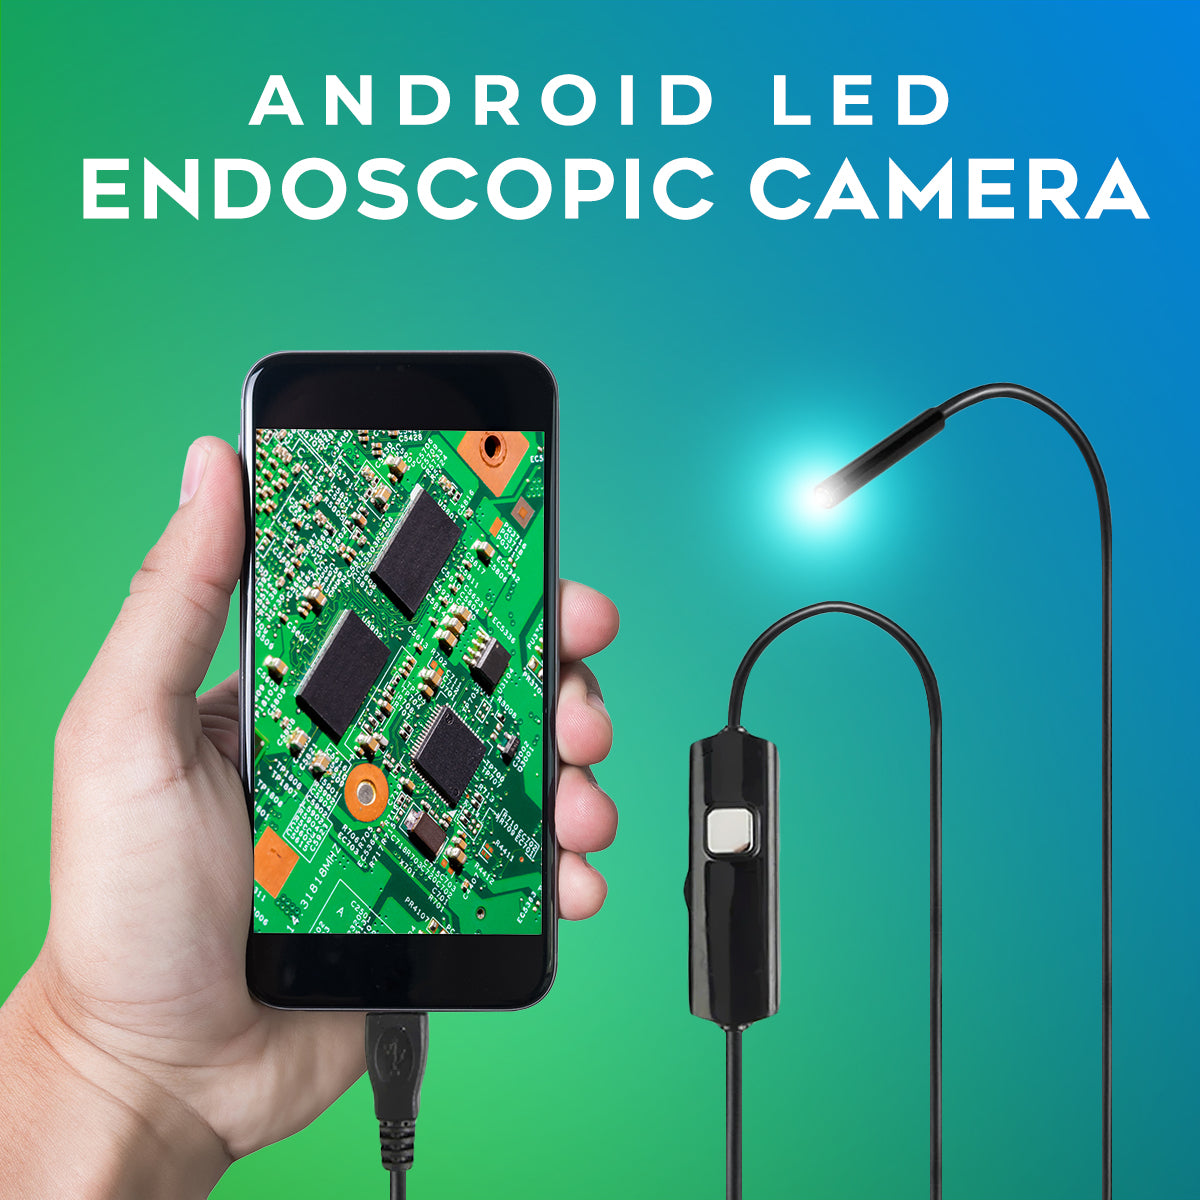 Android LED Endoscopic Camera